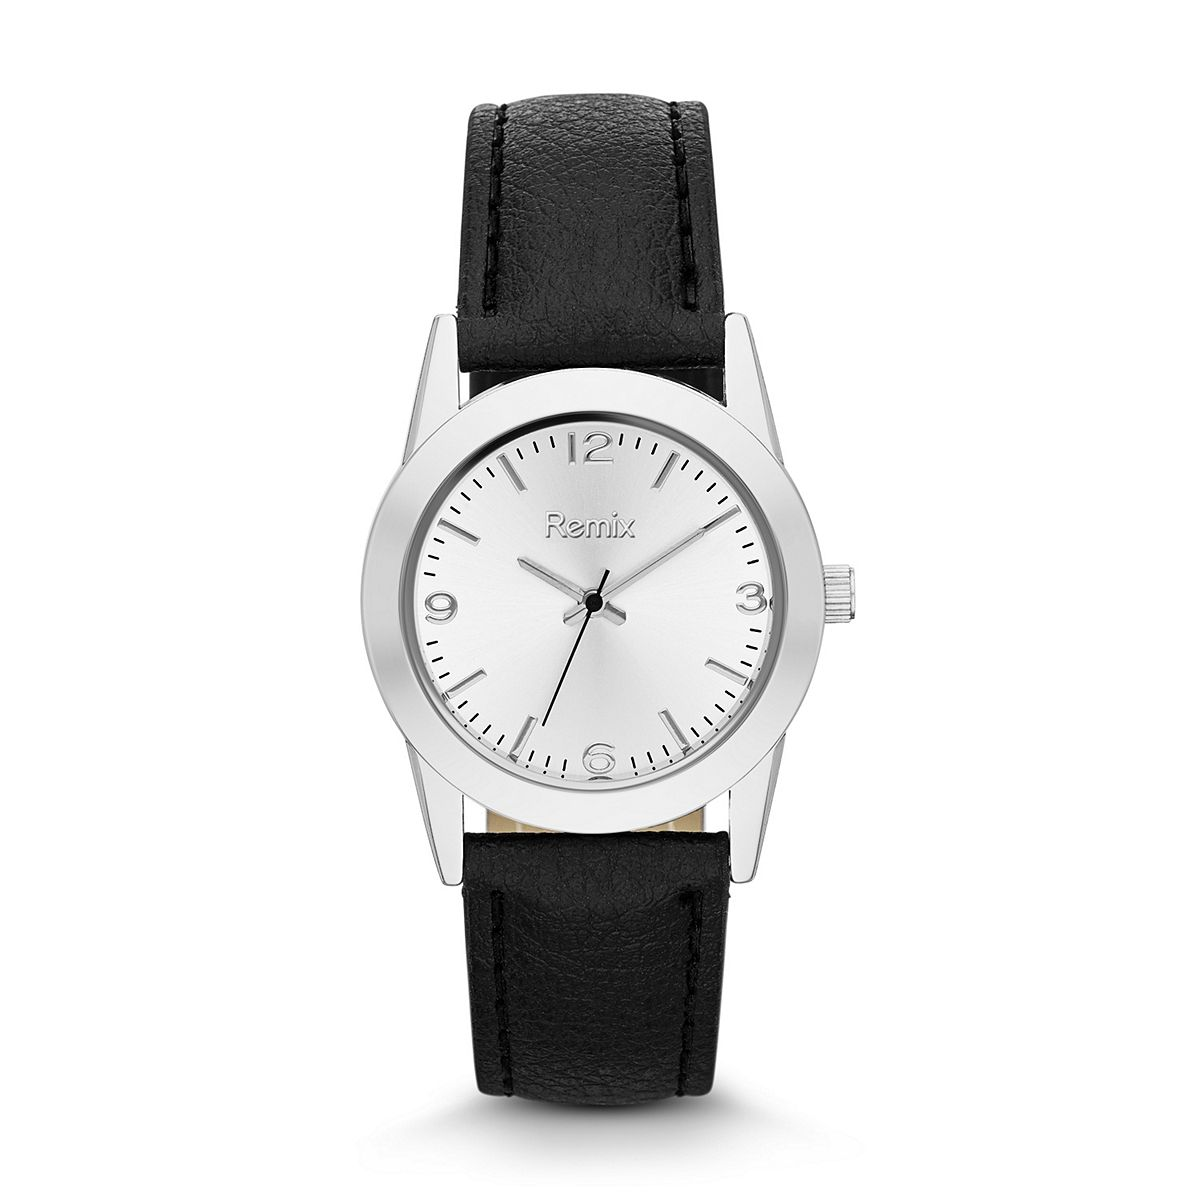 Classic Black Leather Strap Watch For Ladies ?/ Promotional prod